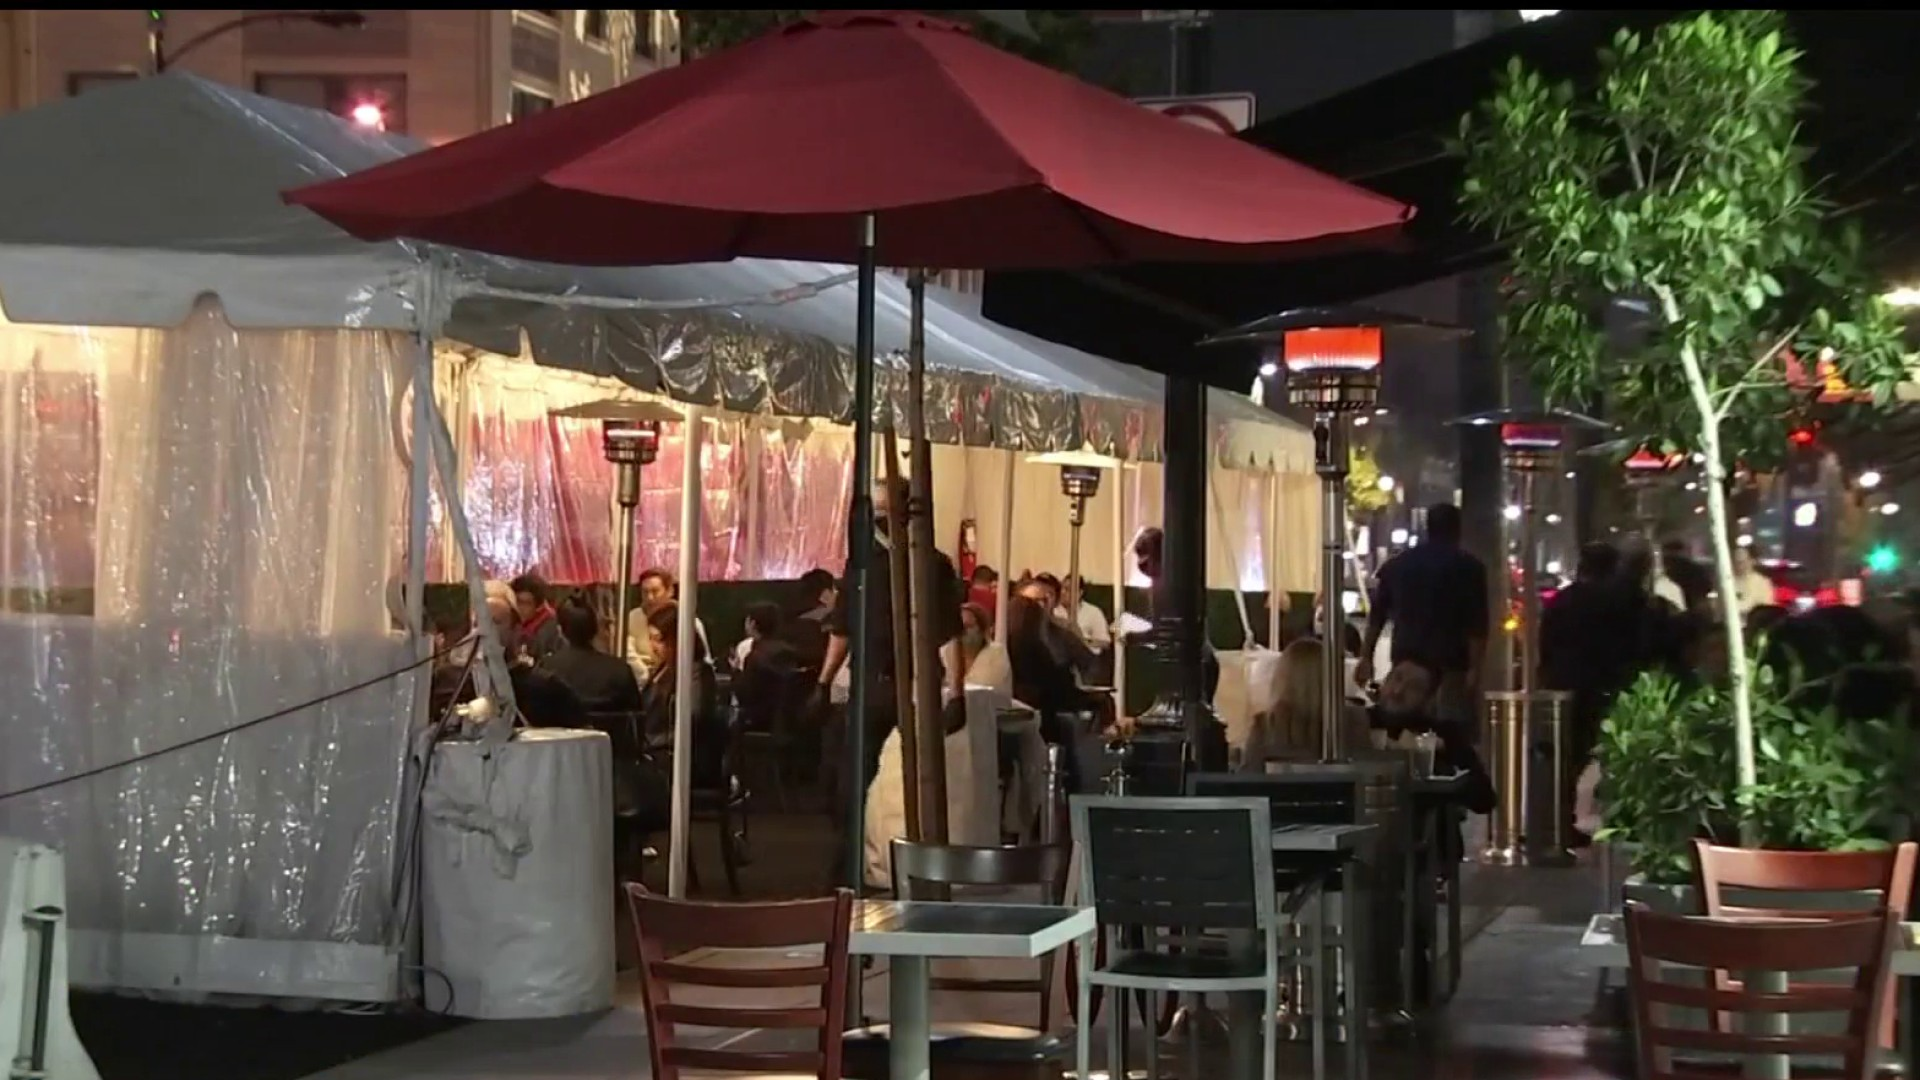 Pasadena Decides to Keep Outdoor Dining Open After LA County Ban Announced